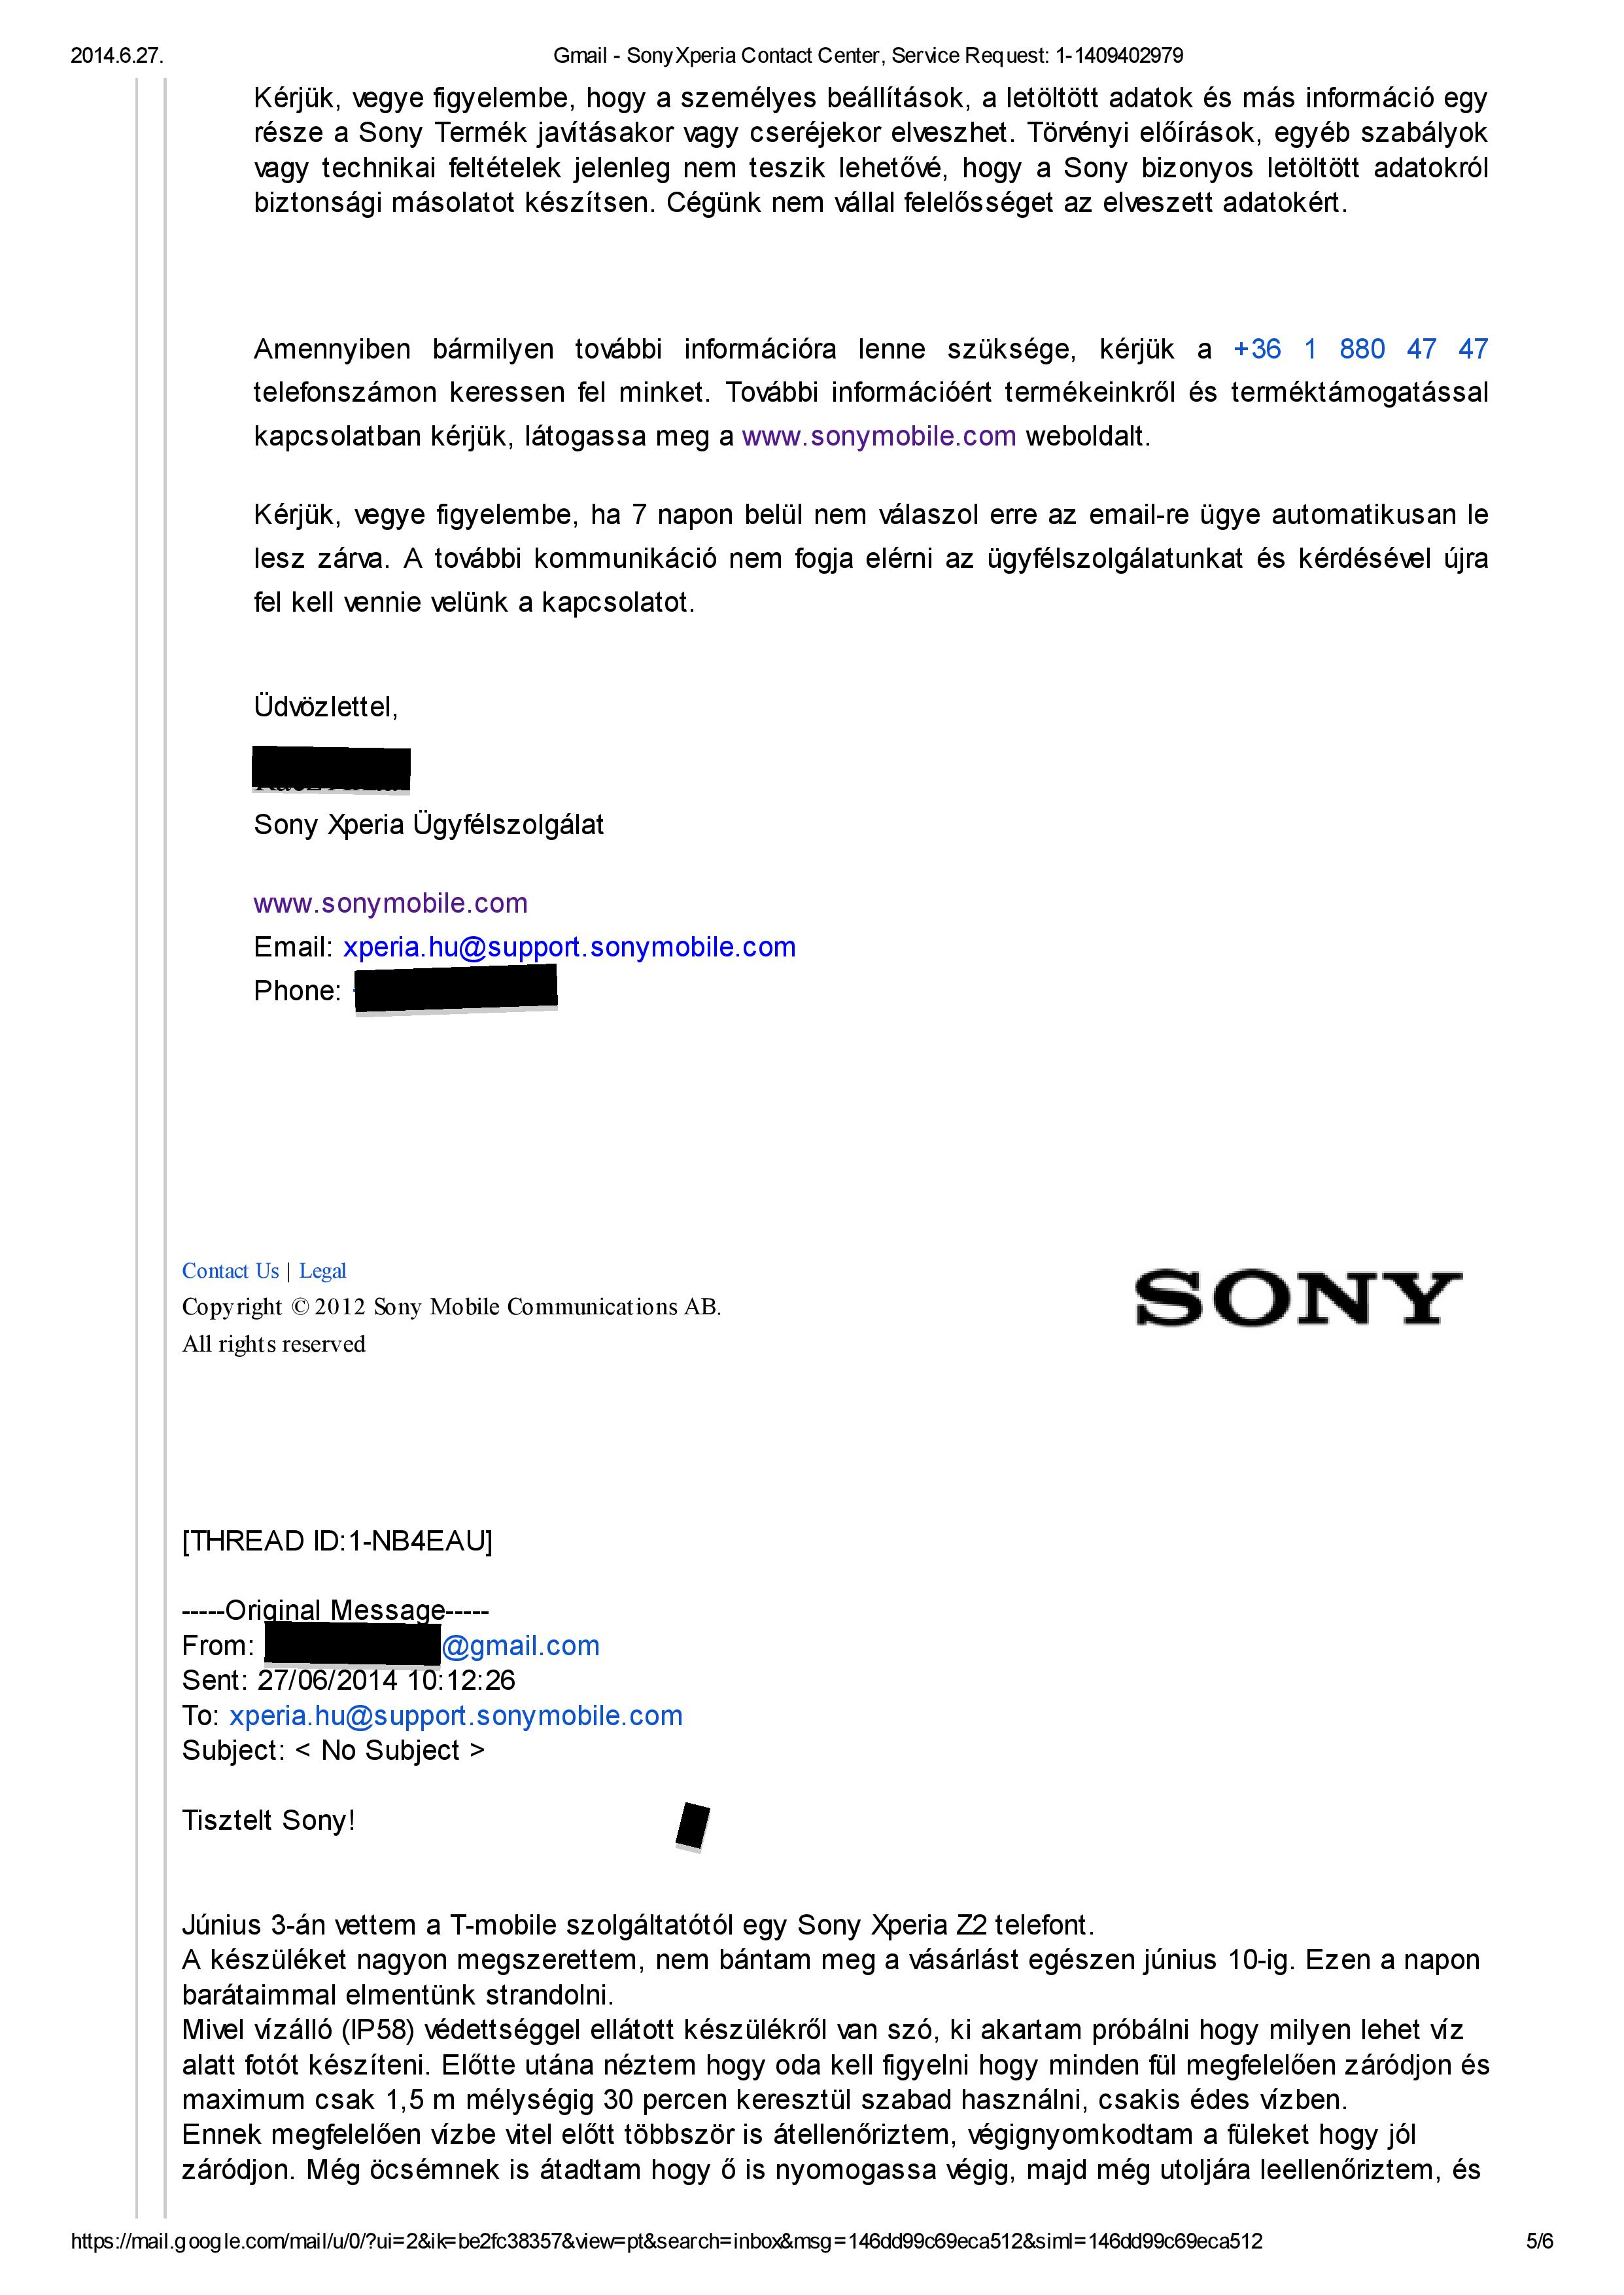 Gmail - Sony Xperia Contact Center, Service Request_ 1-1409402979-page-005 (1).jpg